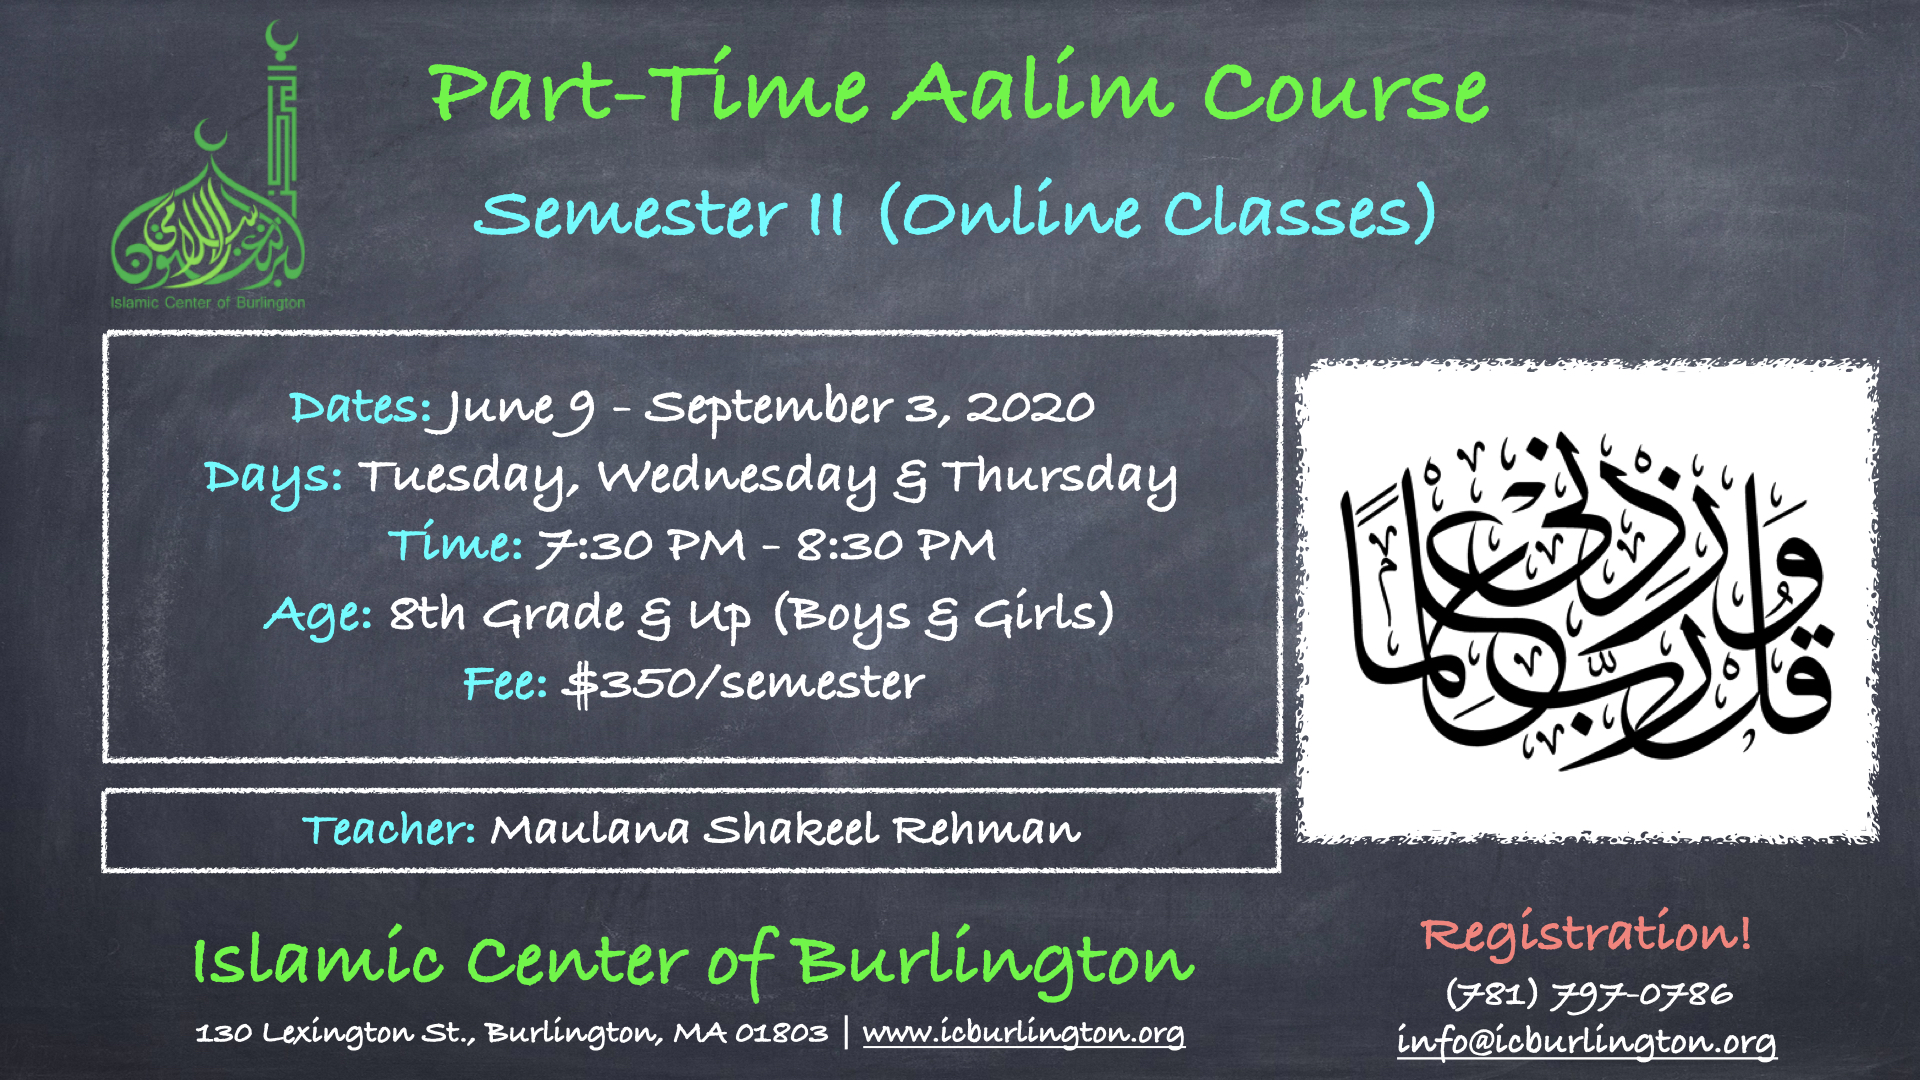 Part-Time Aalim Course